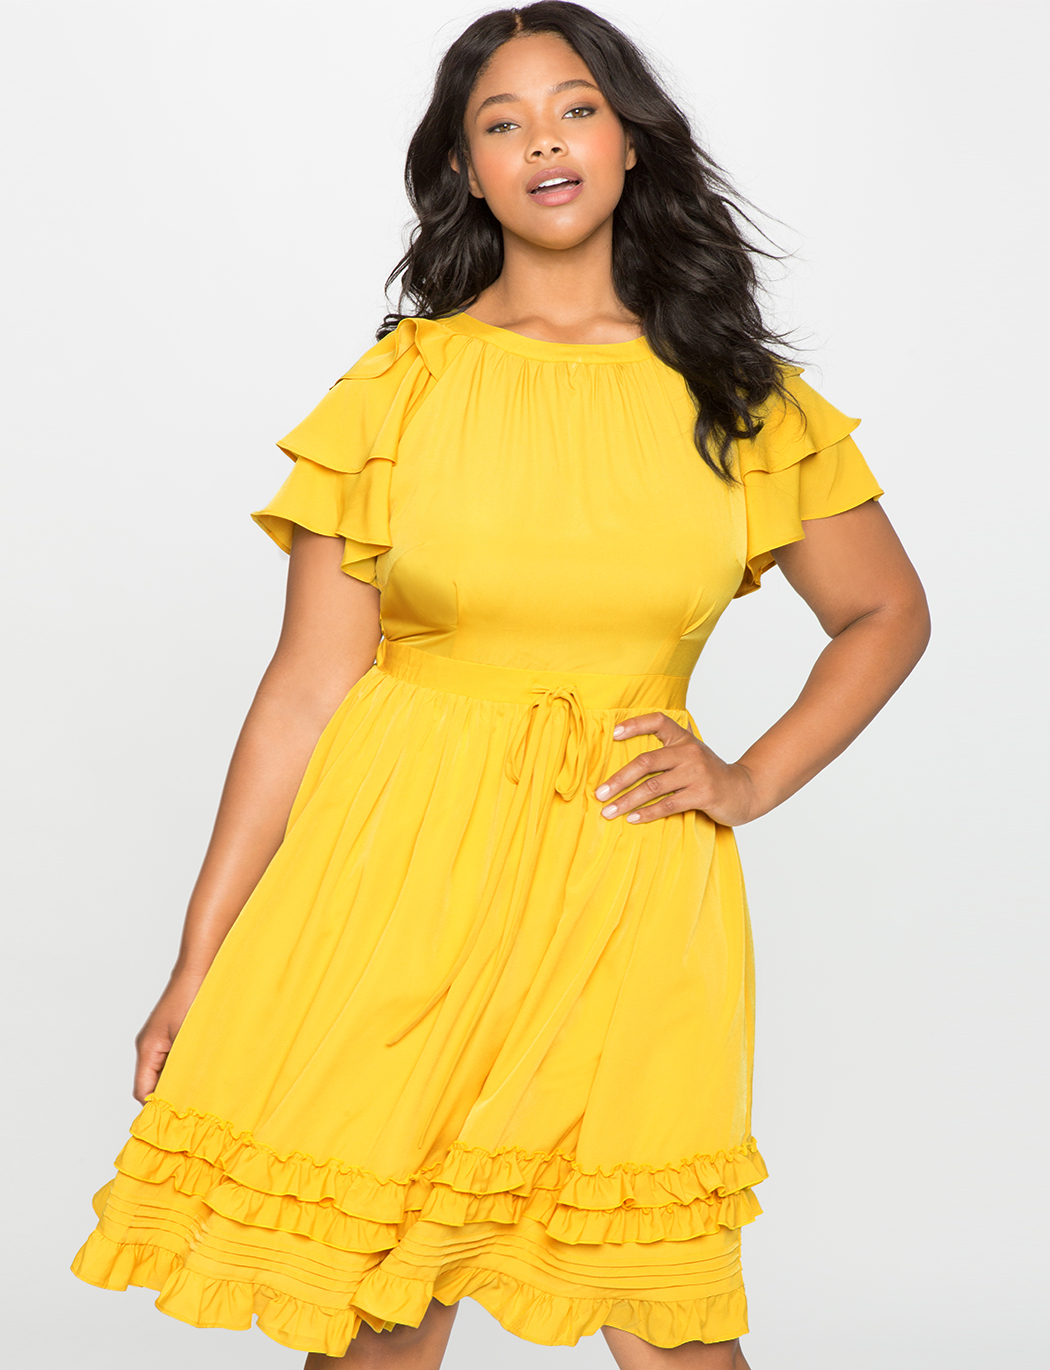 Ruffles and Pintucks Fit and Flare Dress | Women\'s Plus Size Dresses |  ELOQUII